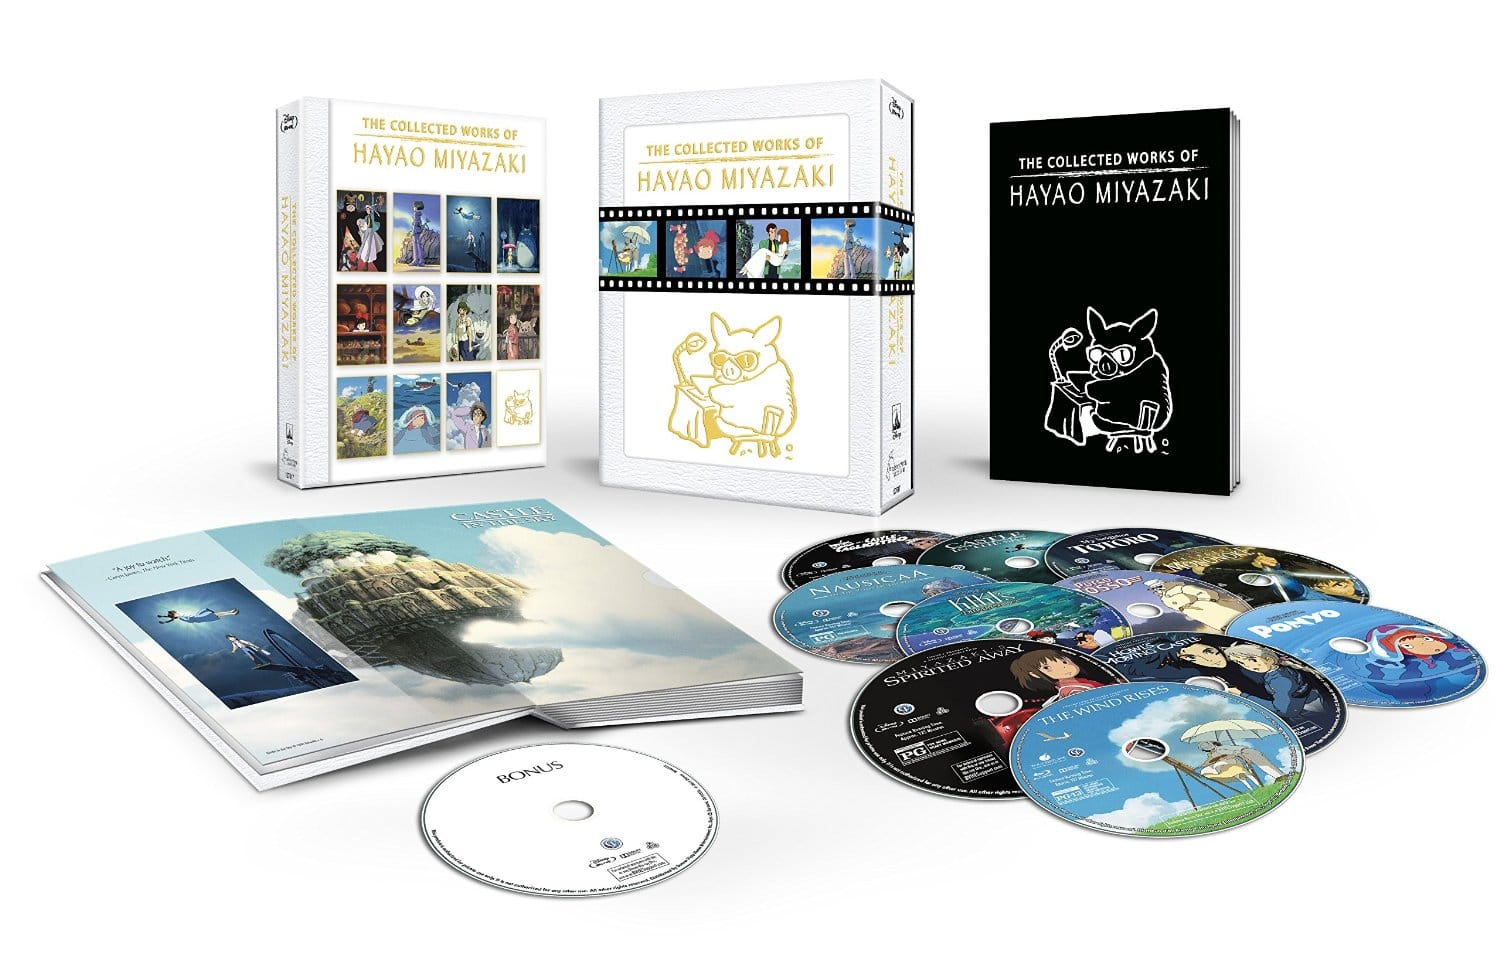 Prime Members: The Collected Works of Hayao Miyazaki (Blu-ray)  $142.40 + Free Shipping